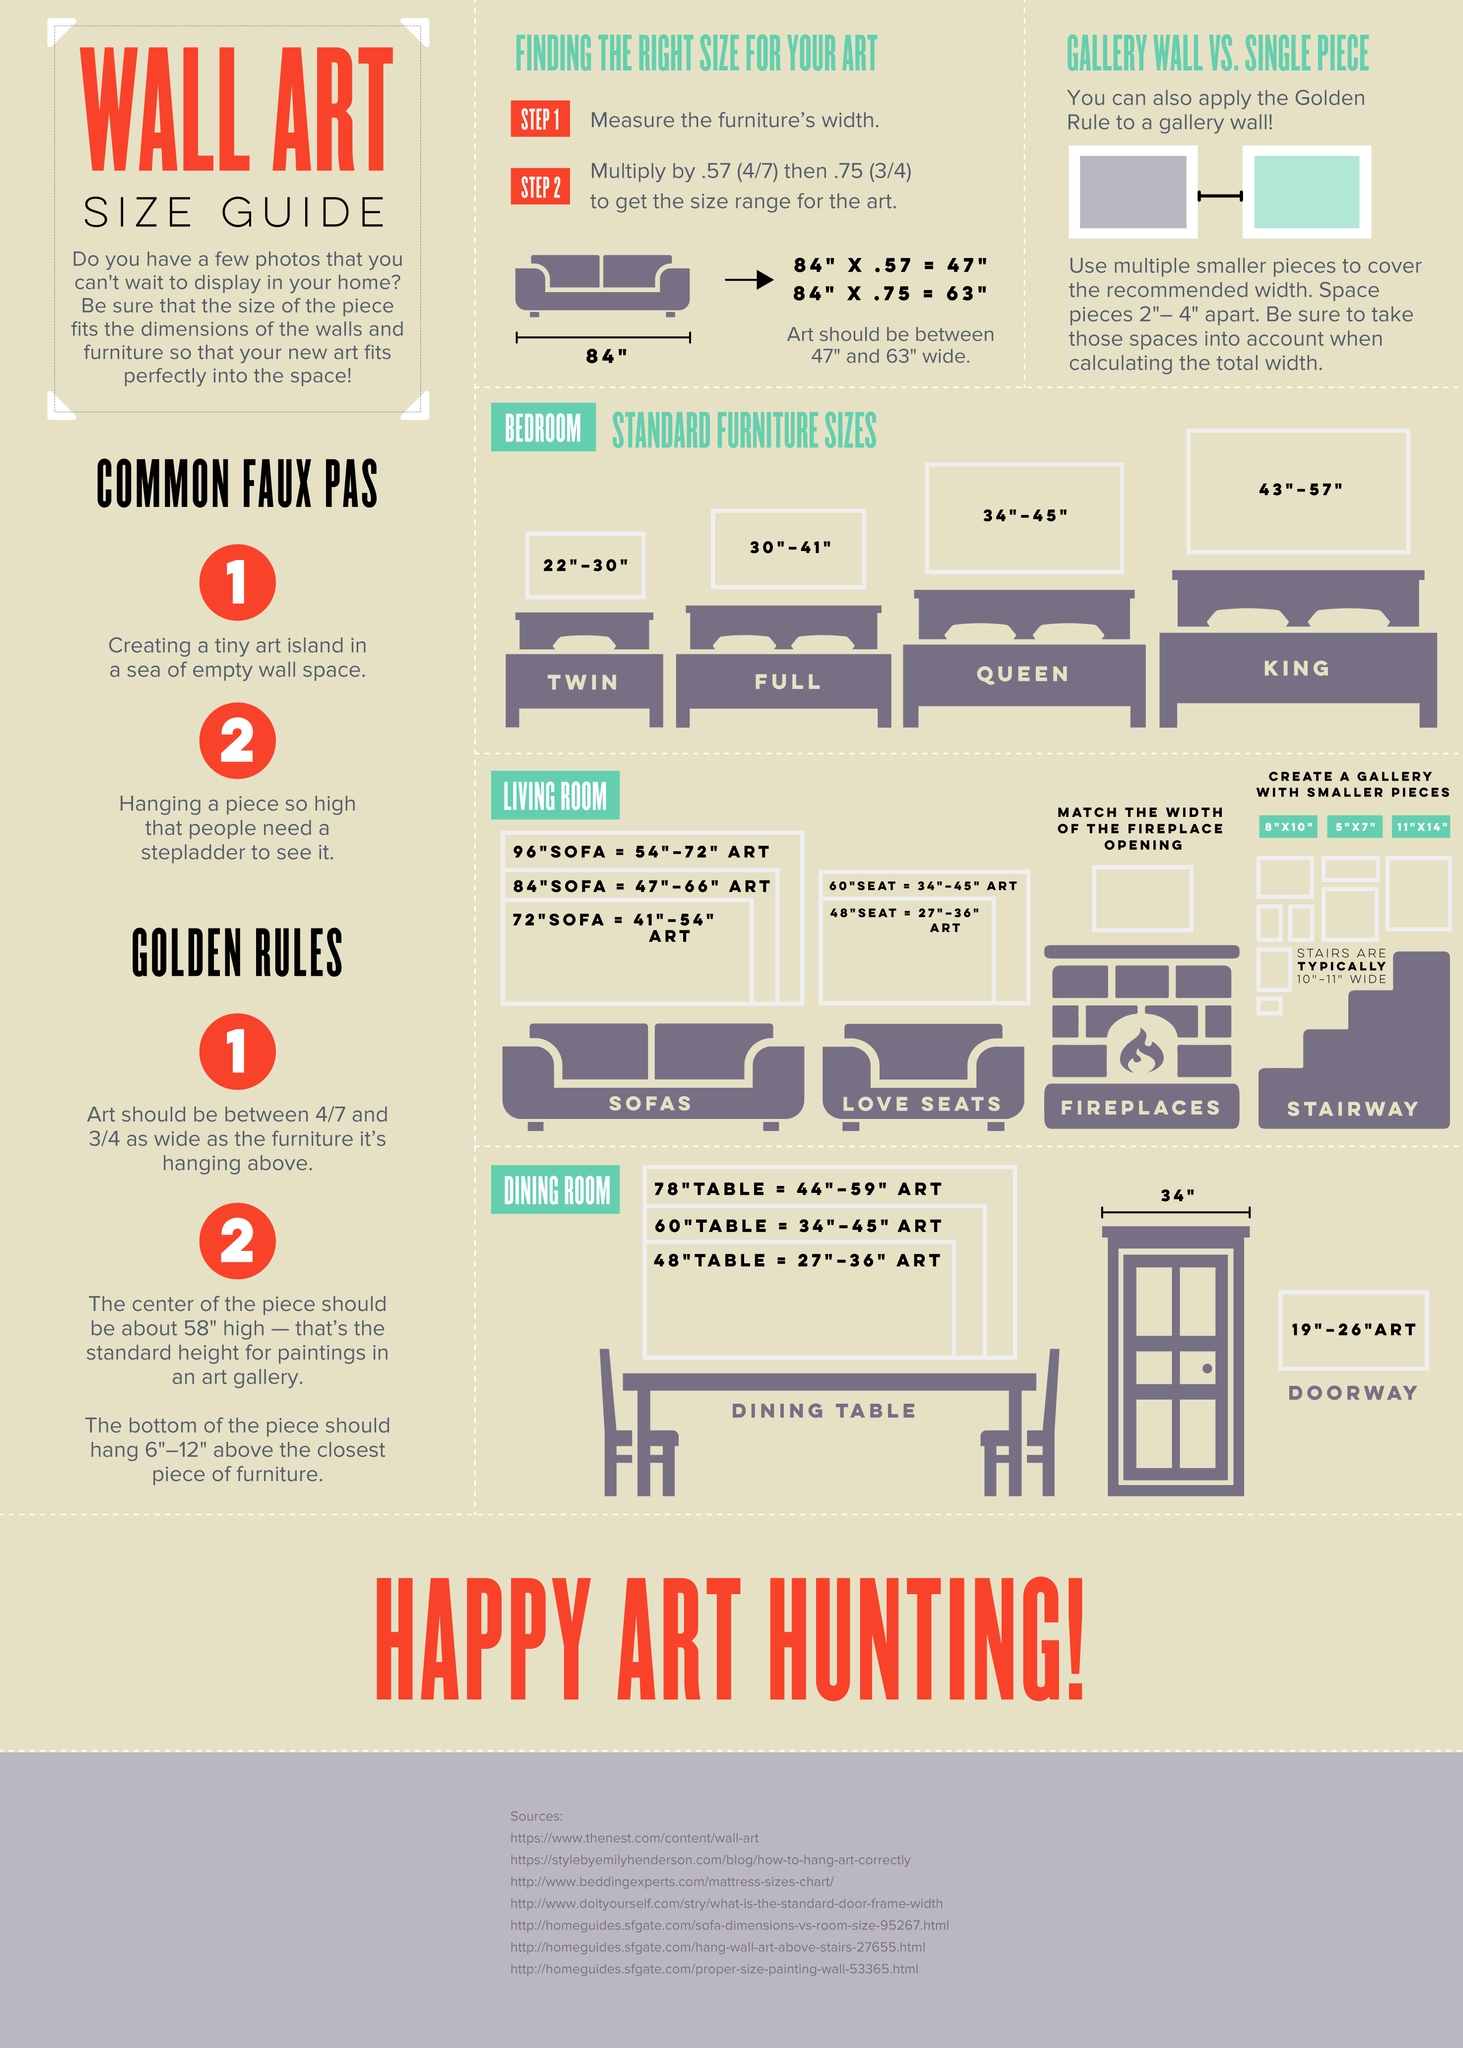 wall art size guide for your home infographic journal artatler online gallery